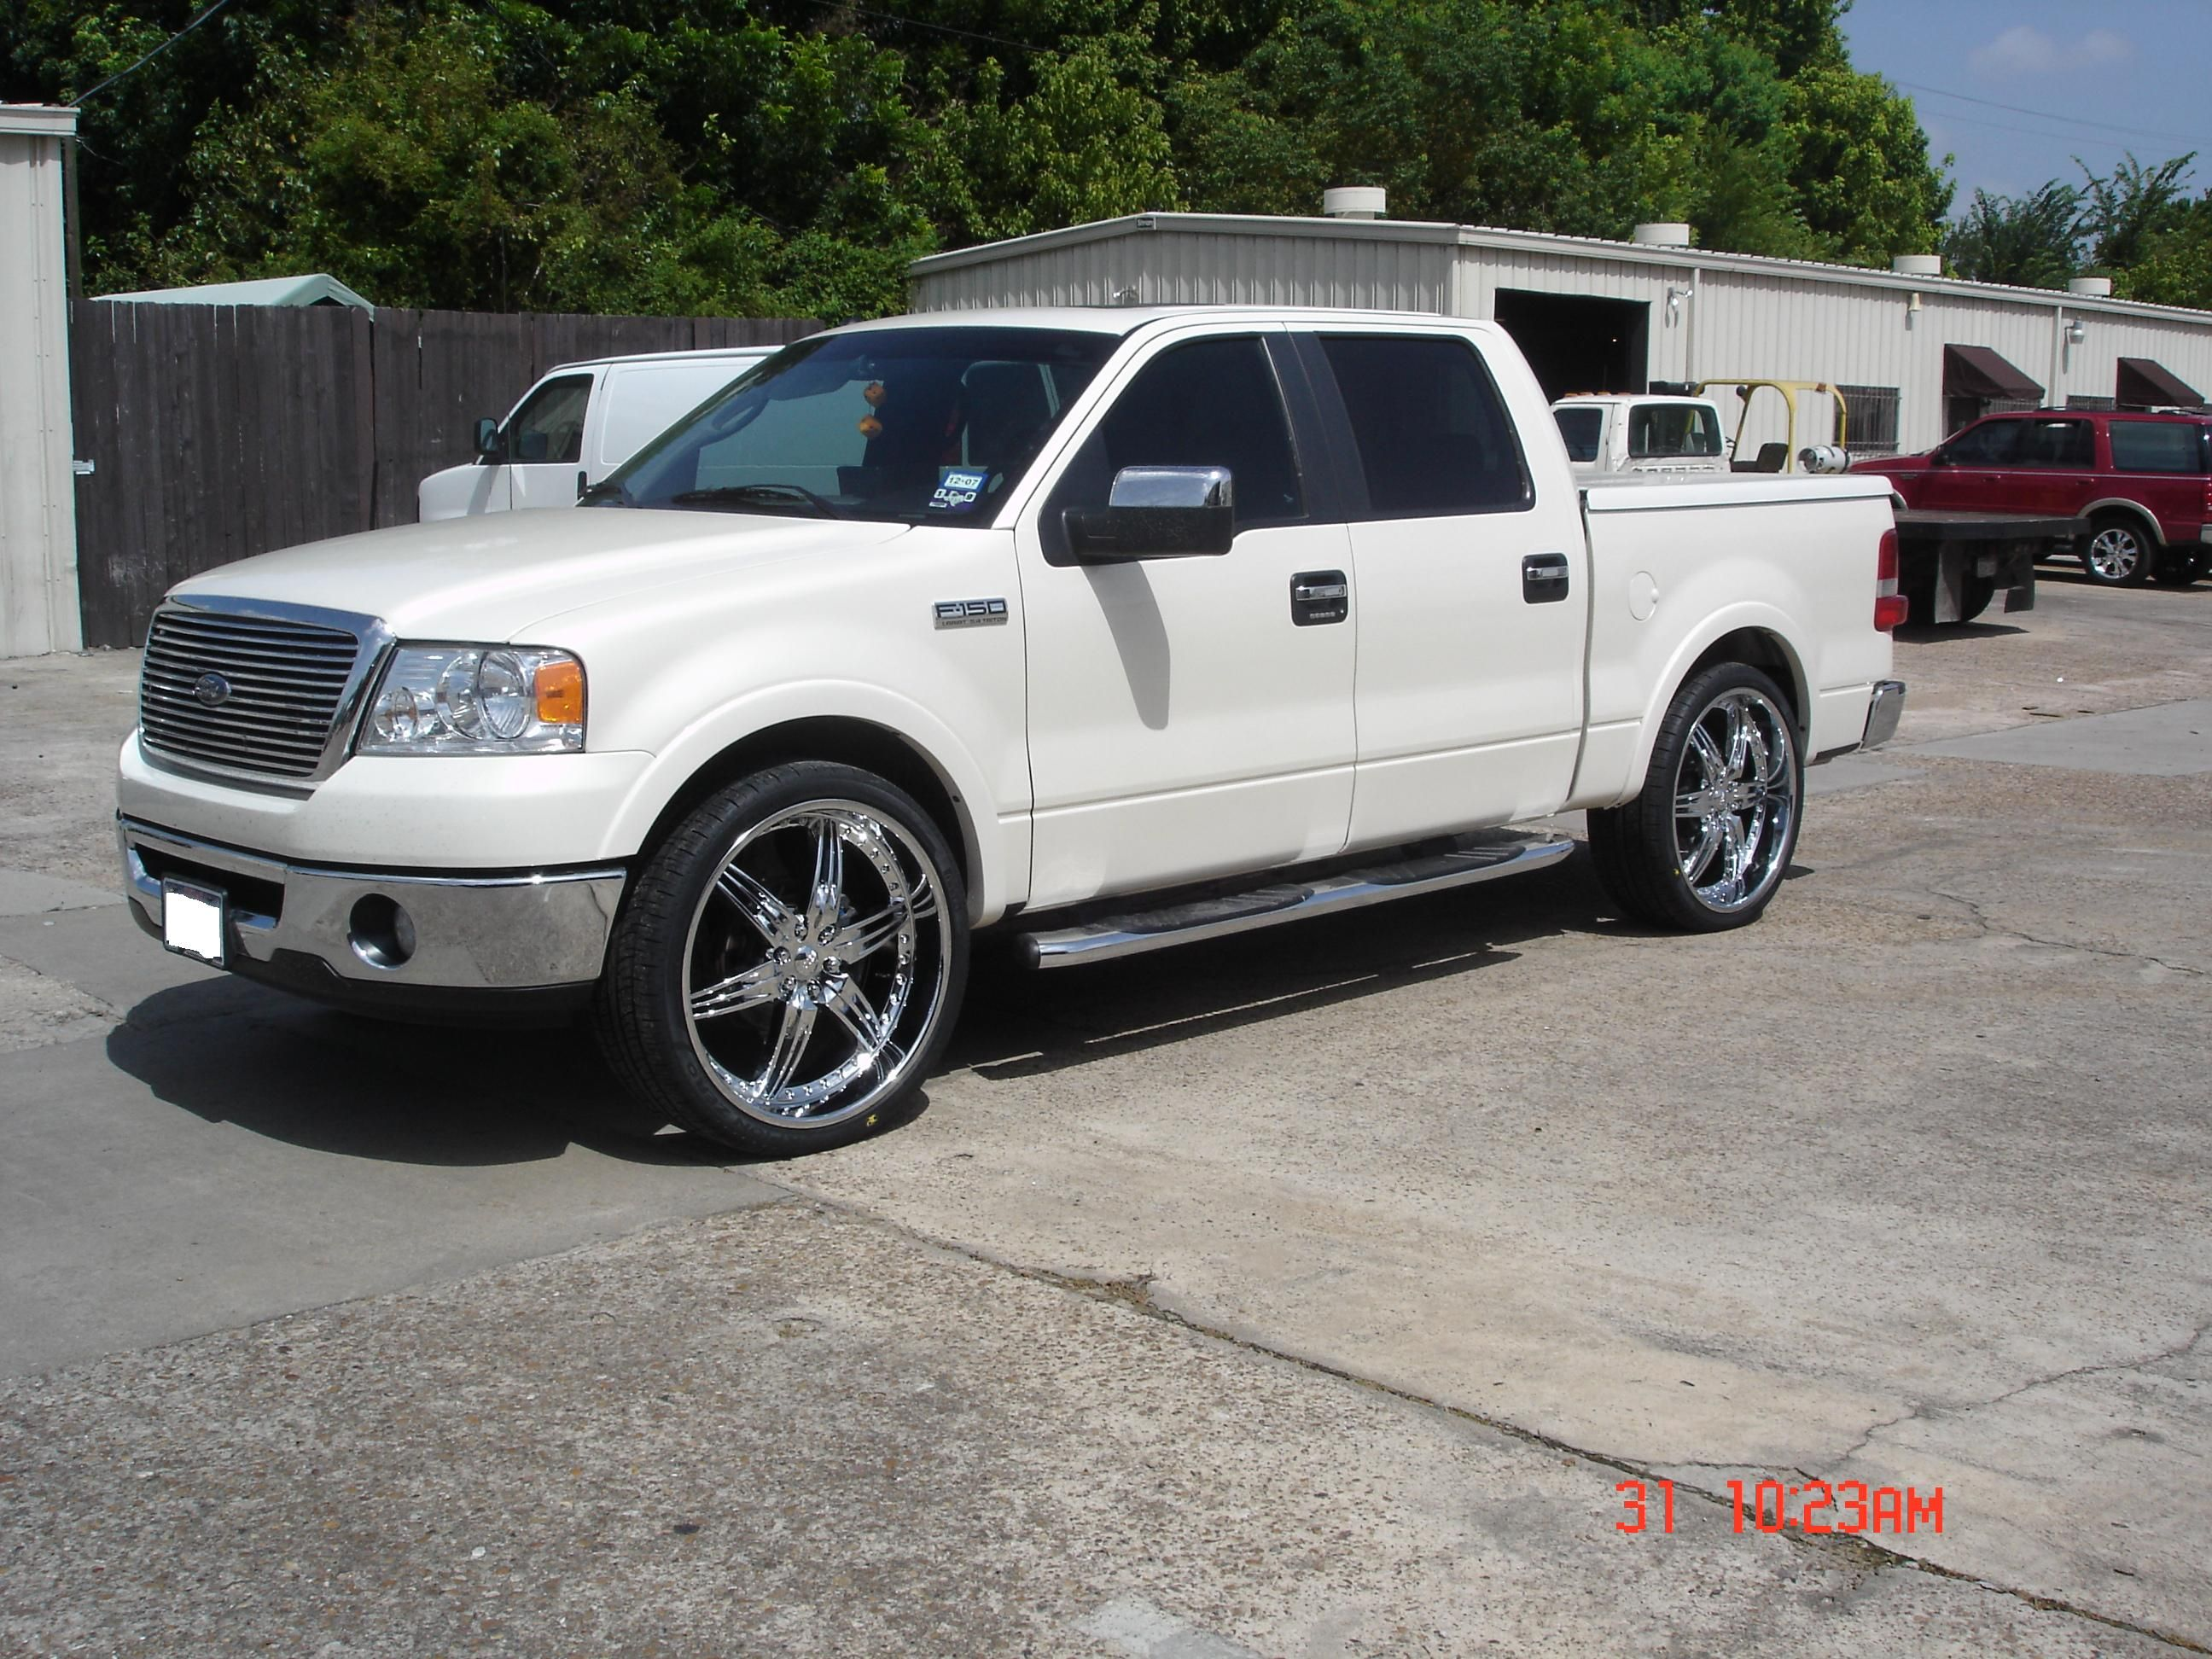 Ford F 150 24 Inch Rims Find the Classic Rims of Your Dreams